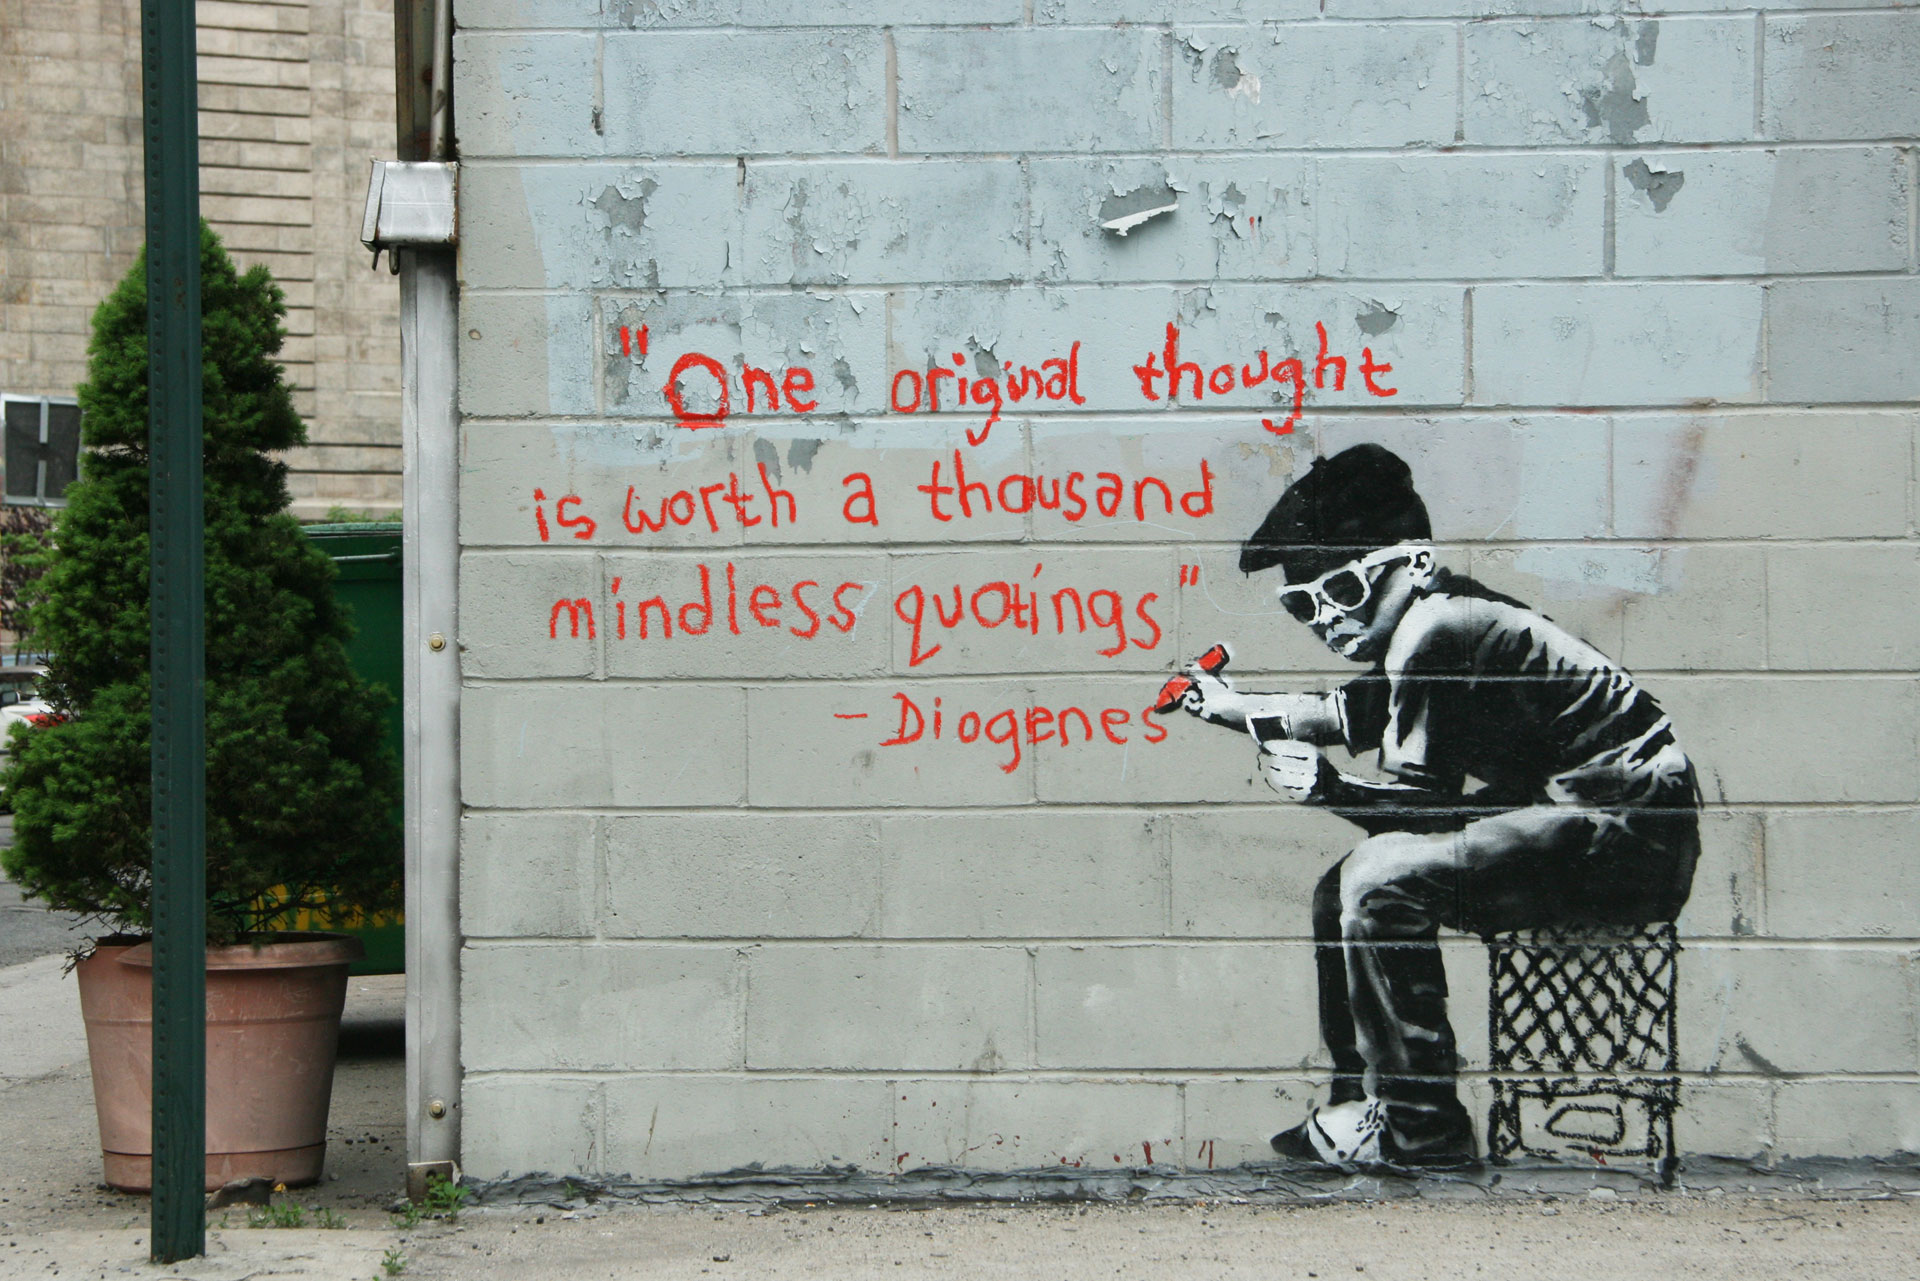 Grafitti art quote - Nfih Na Jclnous Nd Mhnjless Lookl Ngs